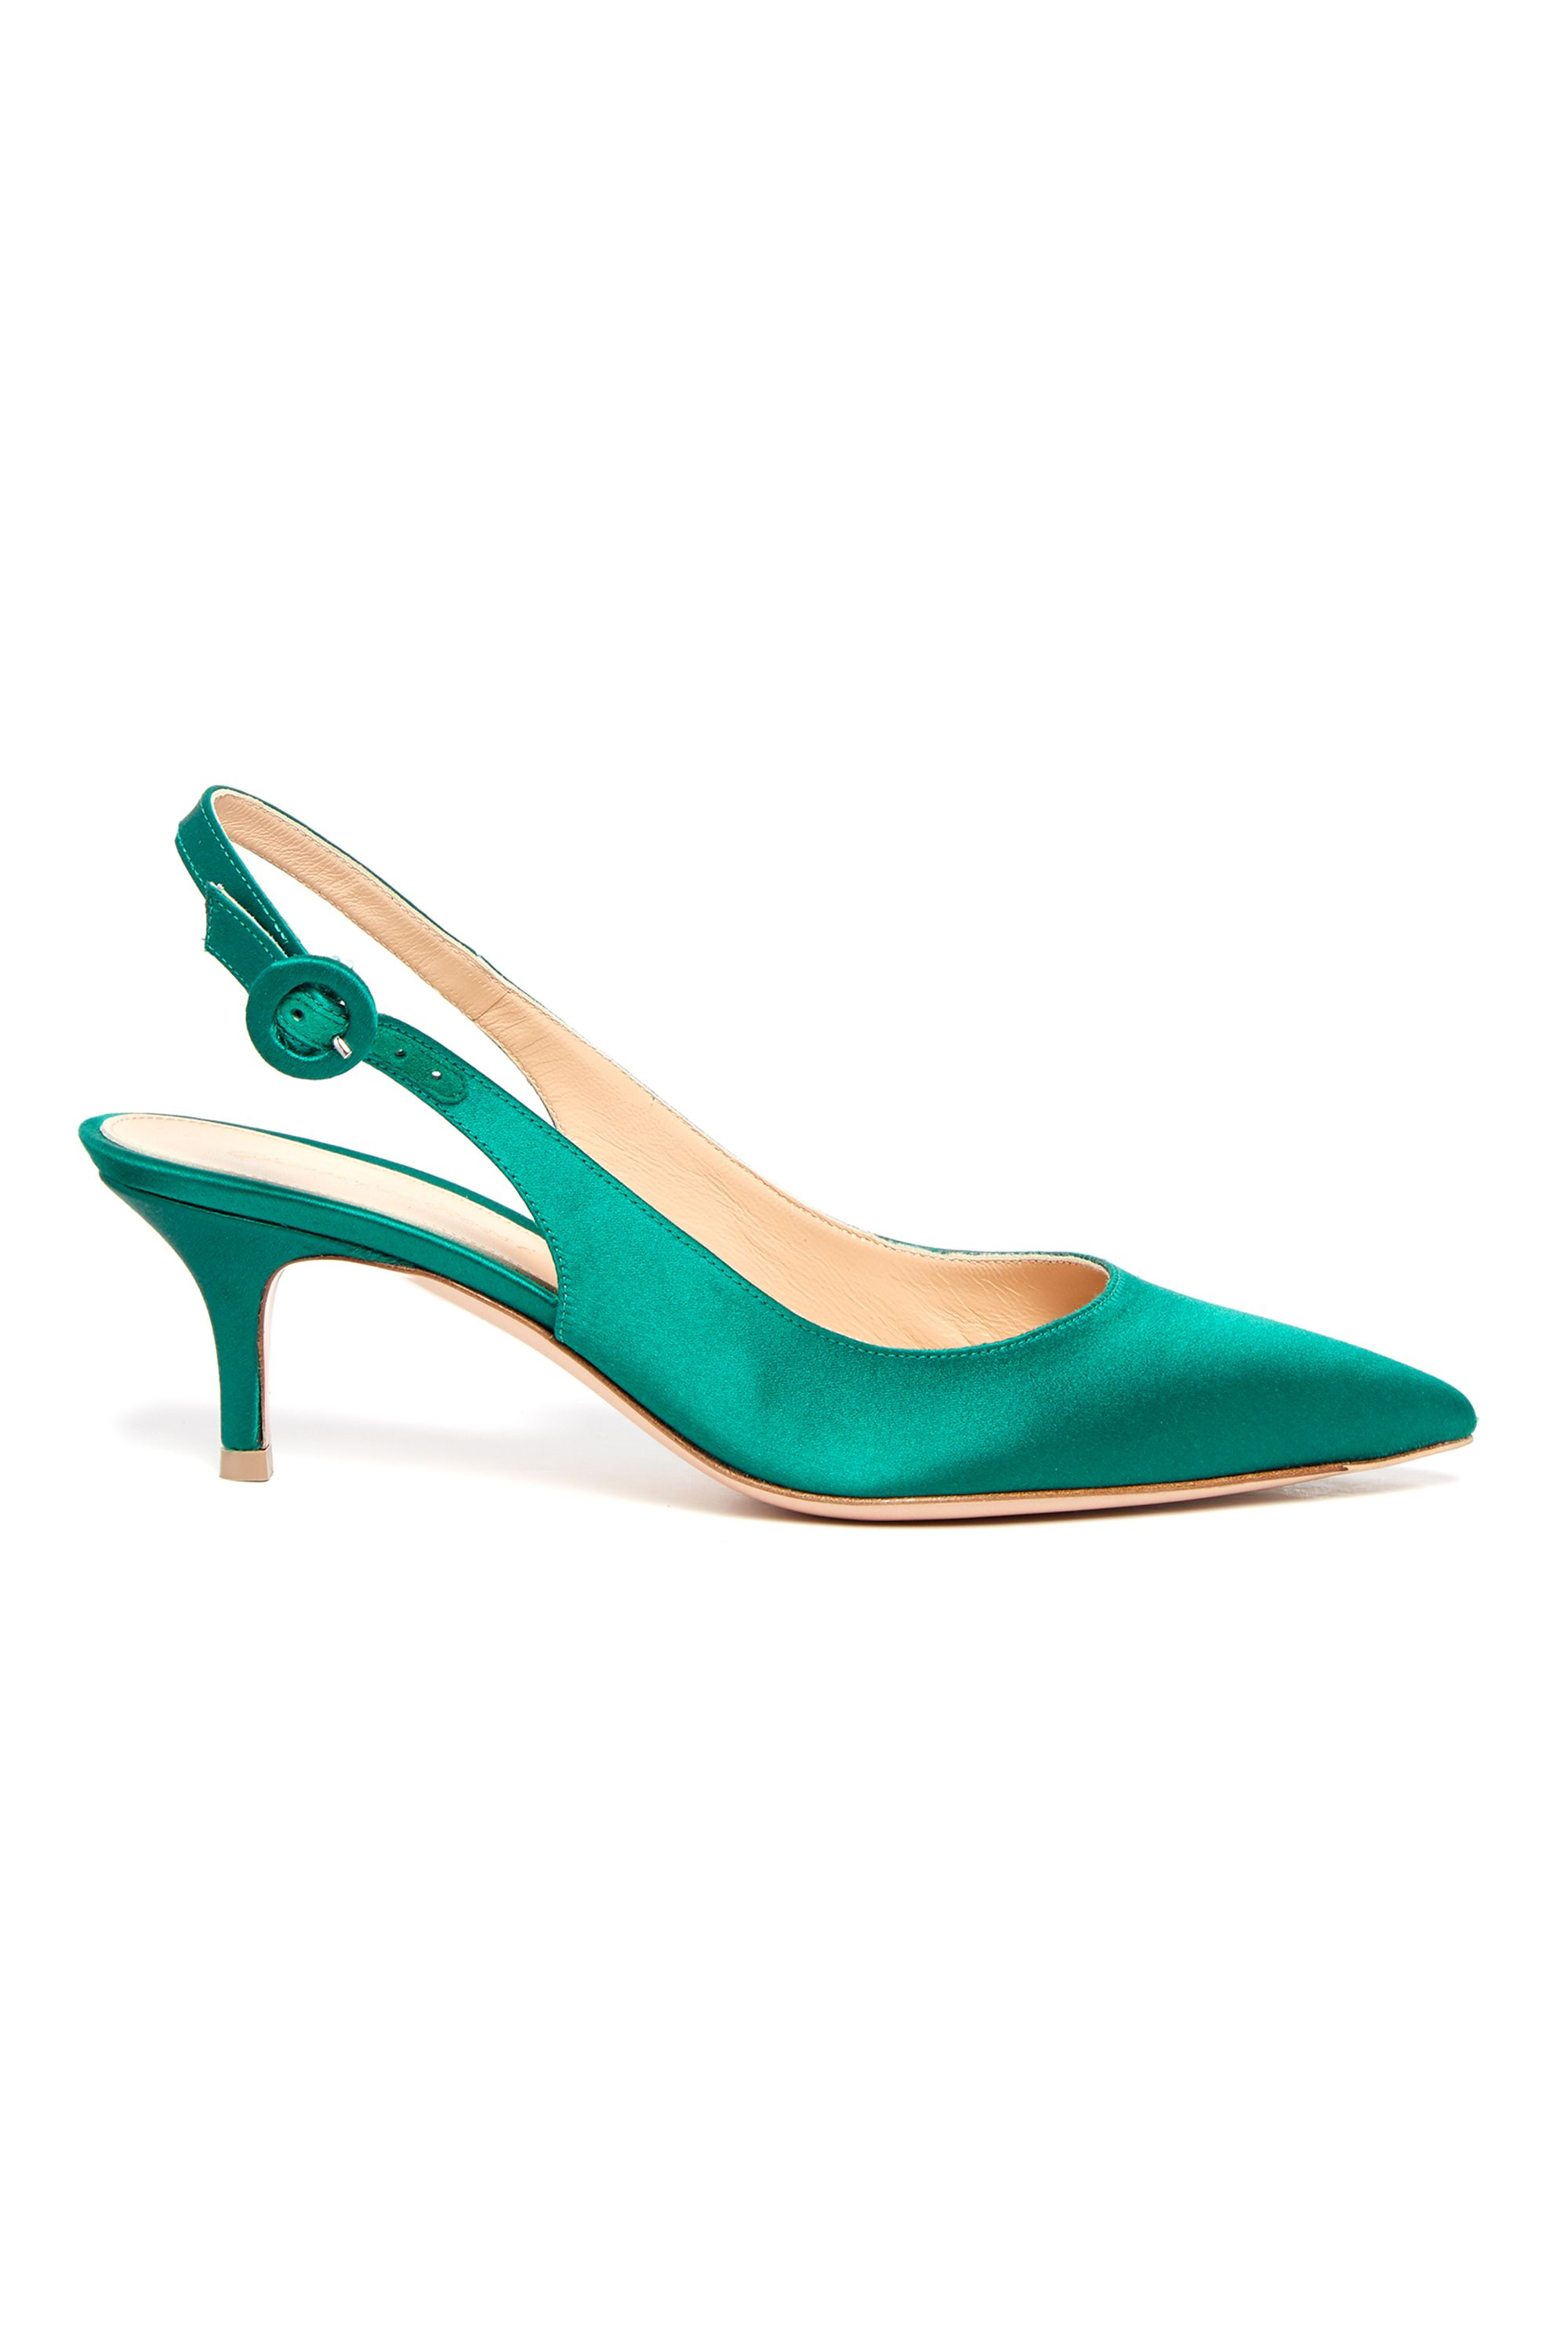 """<p> Gianvito Rossi, Anna<br> slingback kitten-heel satin pumps, $550,<a href=""""http://www.matchesfashion.com/products/Gianvito-Rossi-Anna-slingback-kitten-heel-satin-pumps-1095795"""">matchesfashion.com</a></p><p><span class=""""redactor-invisible-space"""" data-verified=""""redactor"""" data-redactor-tag=""""span"""" data-redactor-class=""""redactor-invisible-space""""></span></p>"""